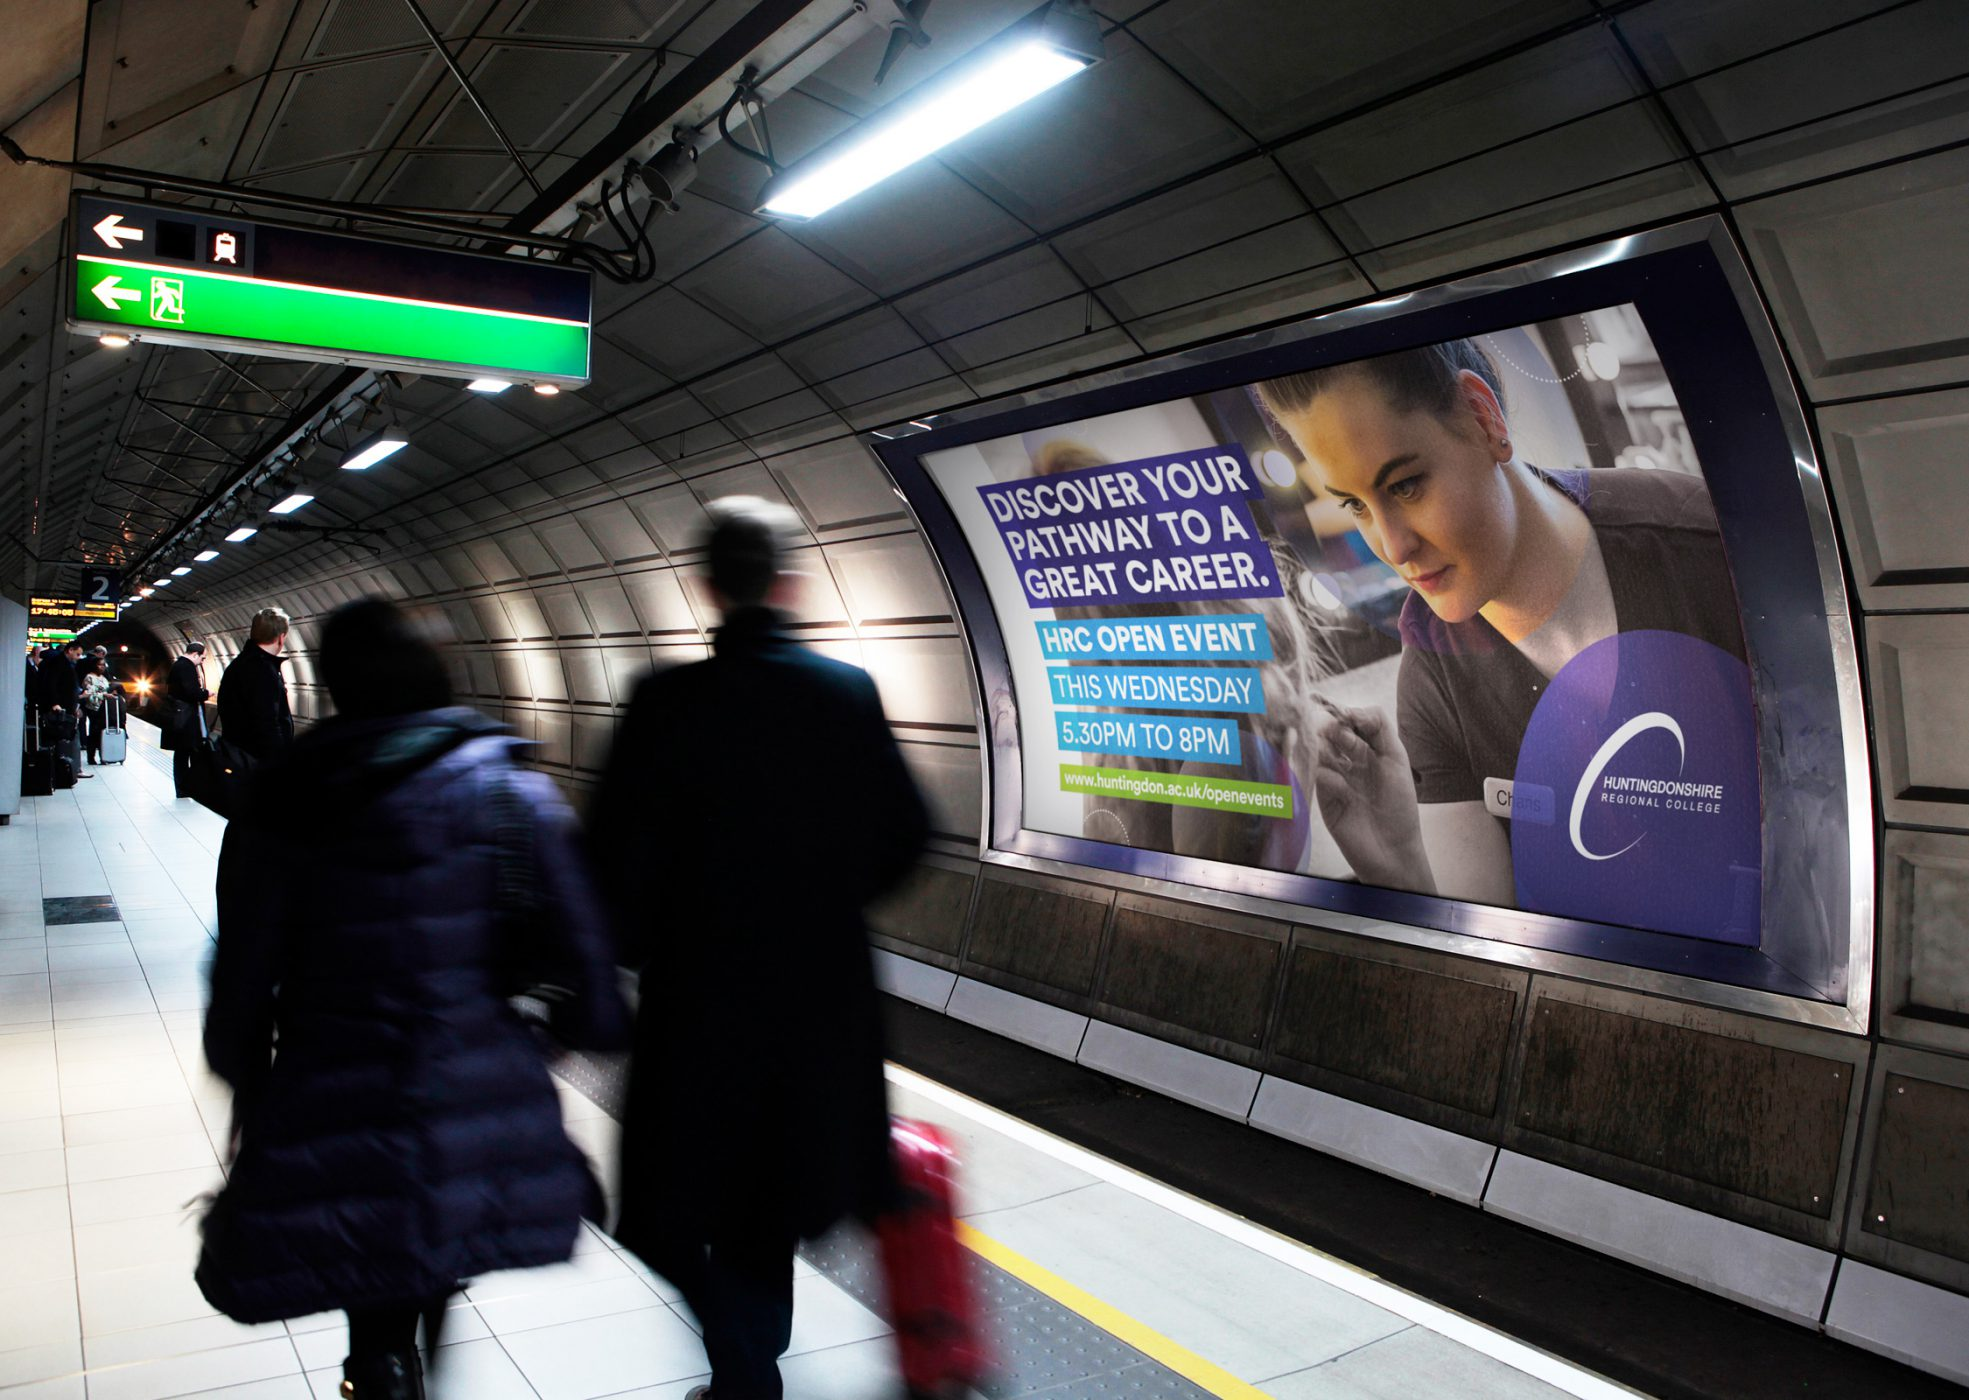 hrc-london-underground-ad